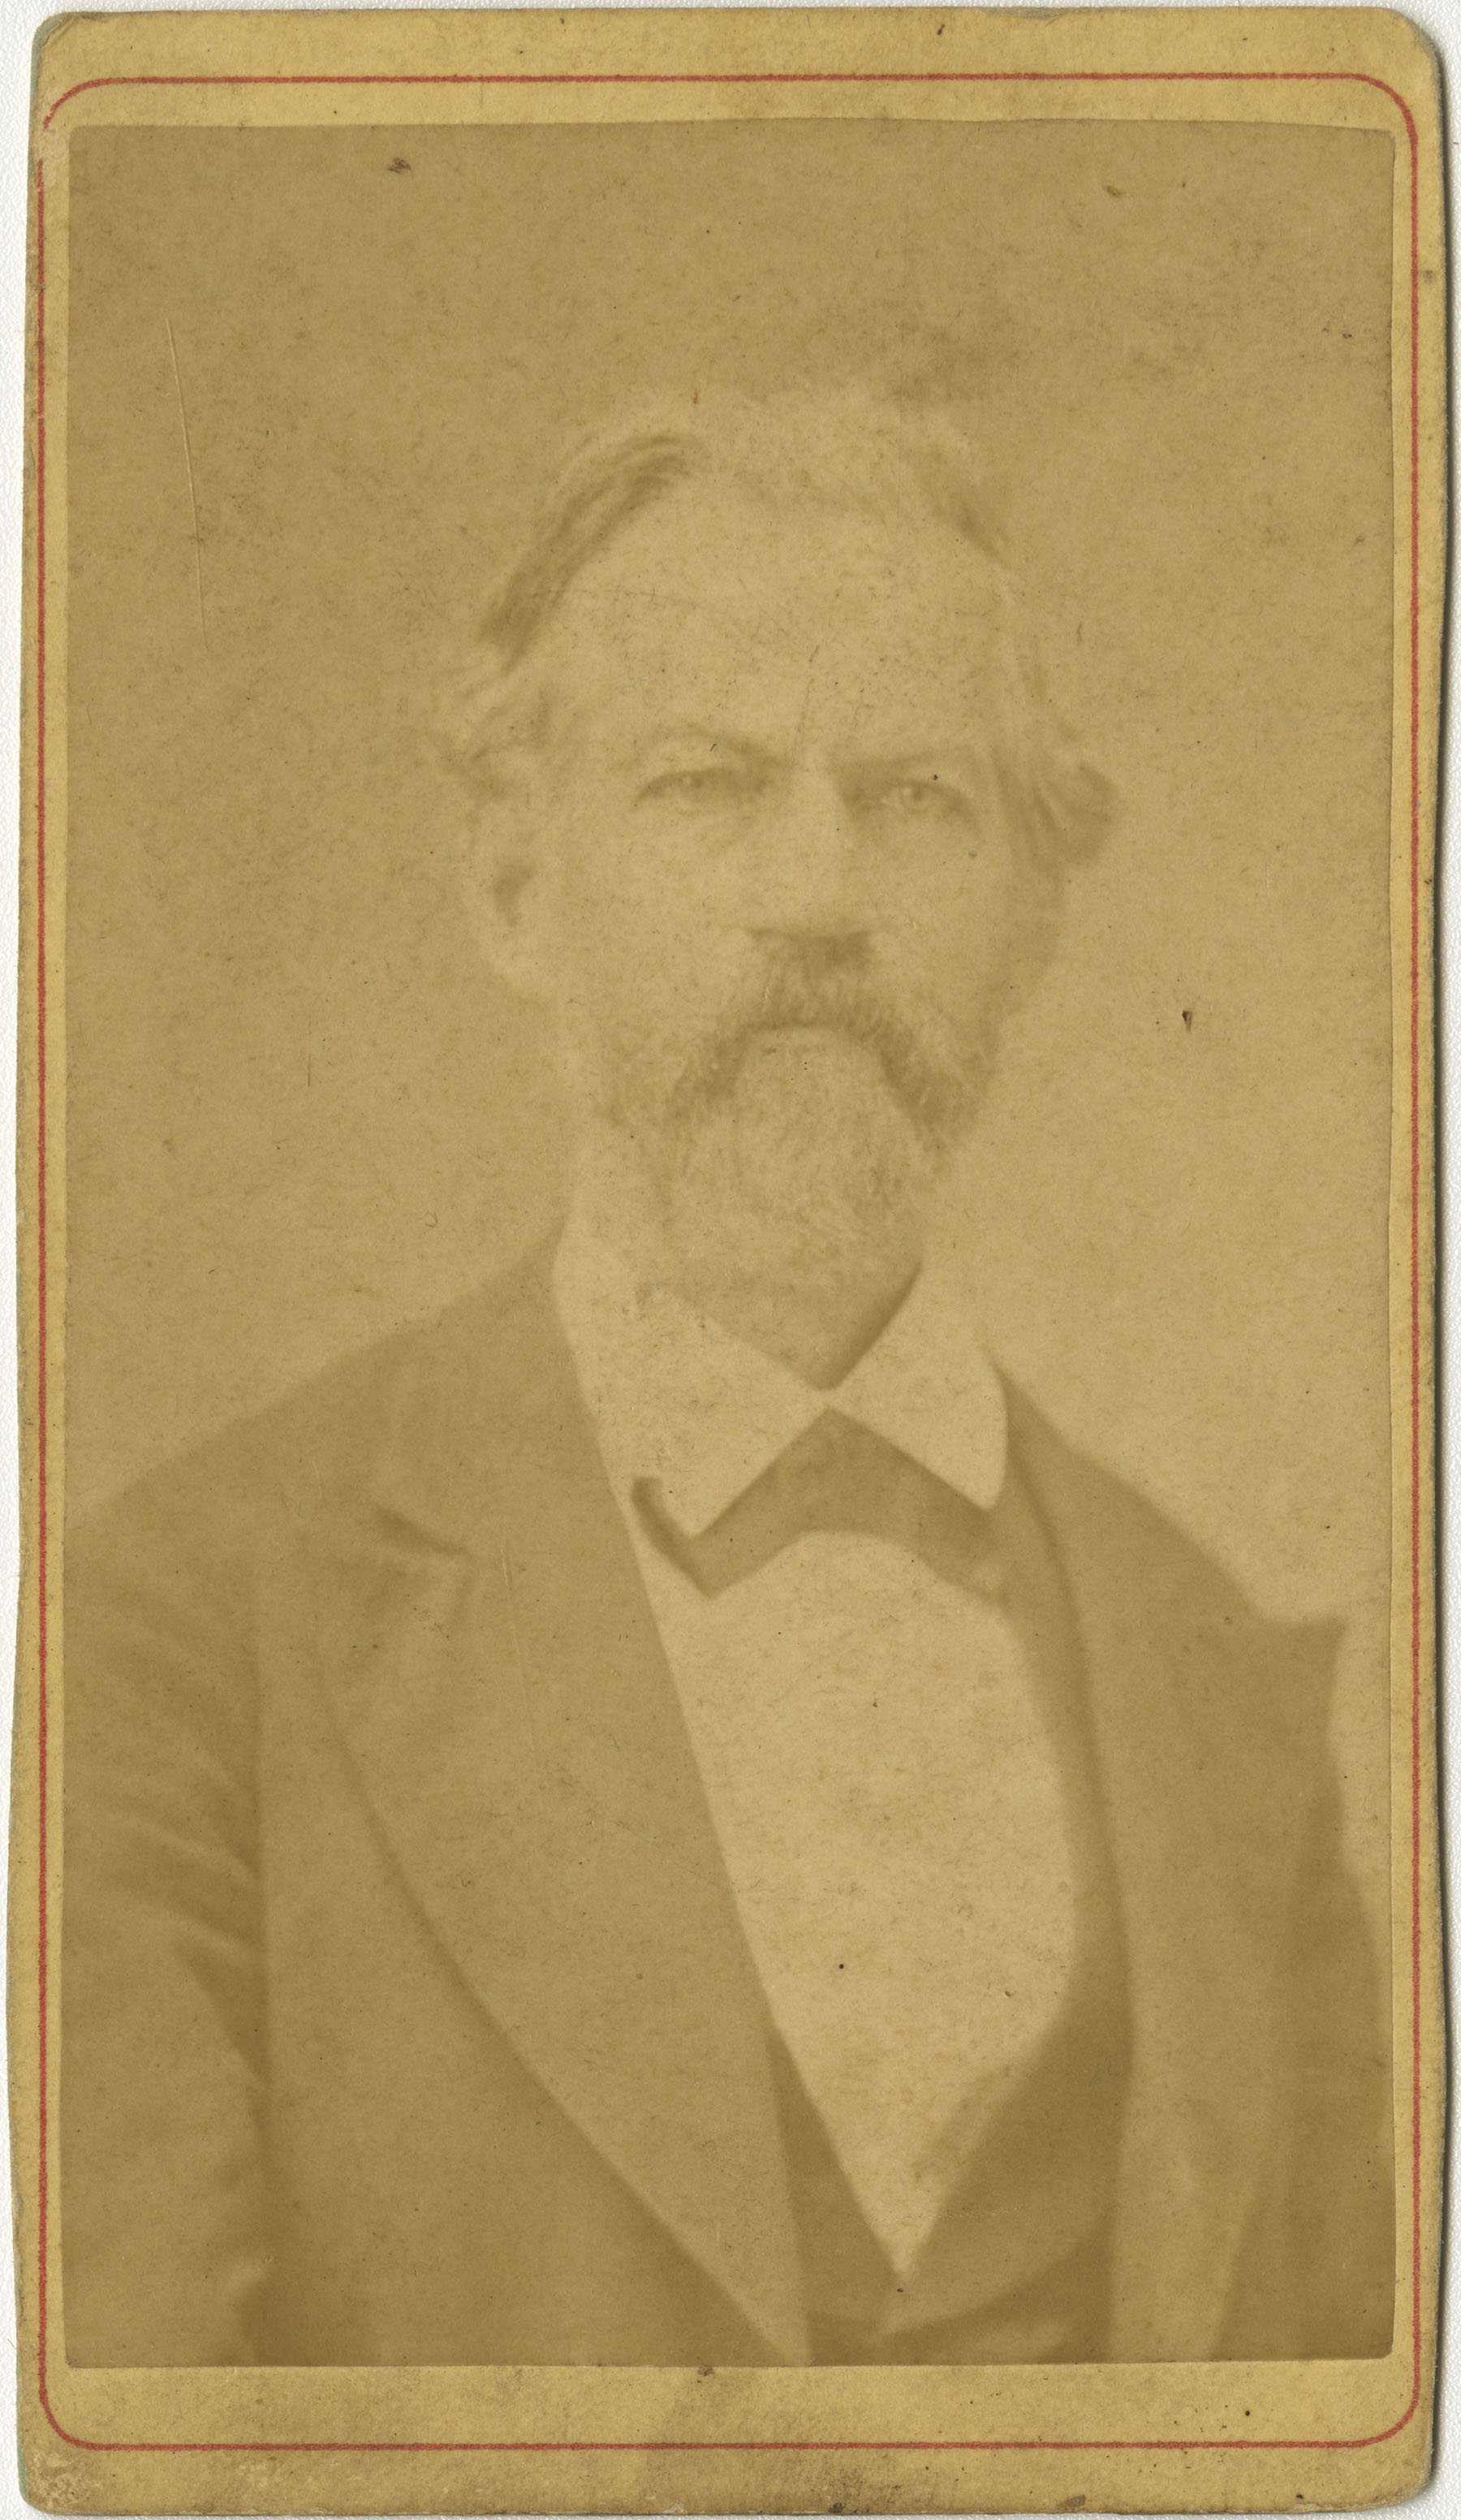 A Portrait of Unidentified Man 12